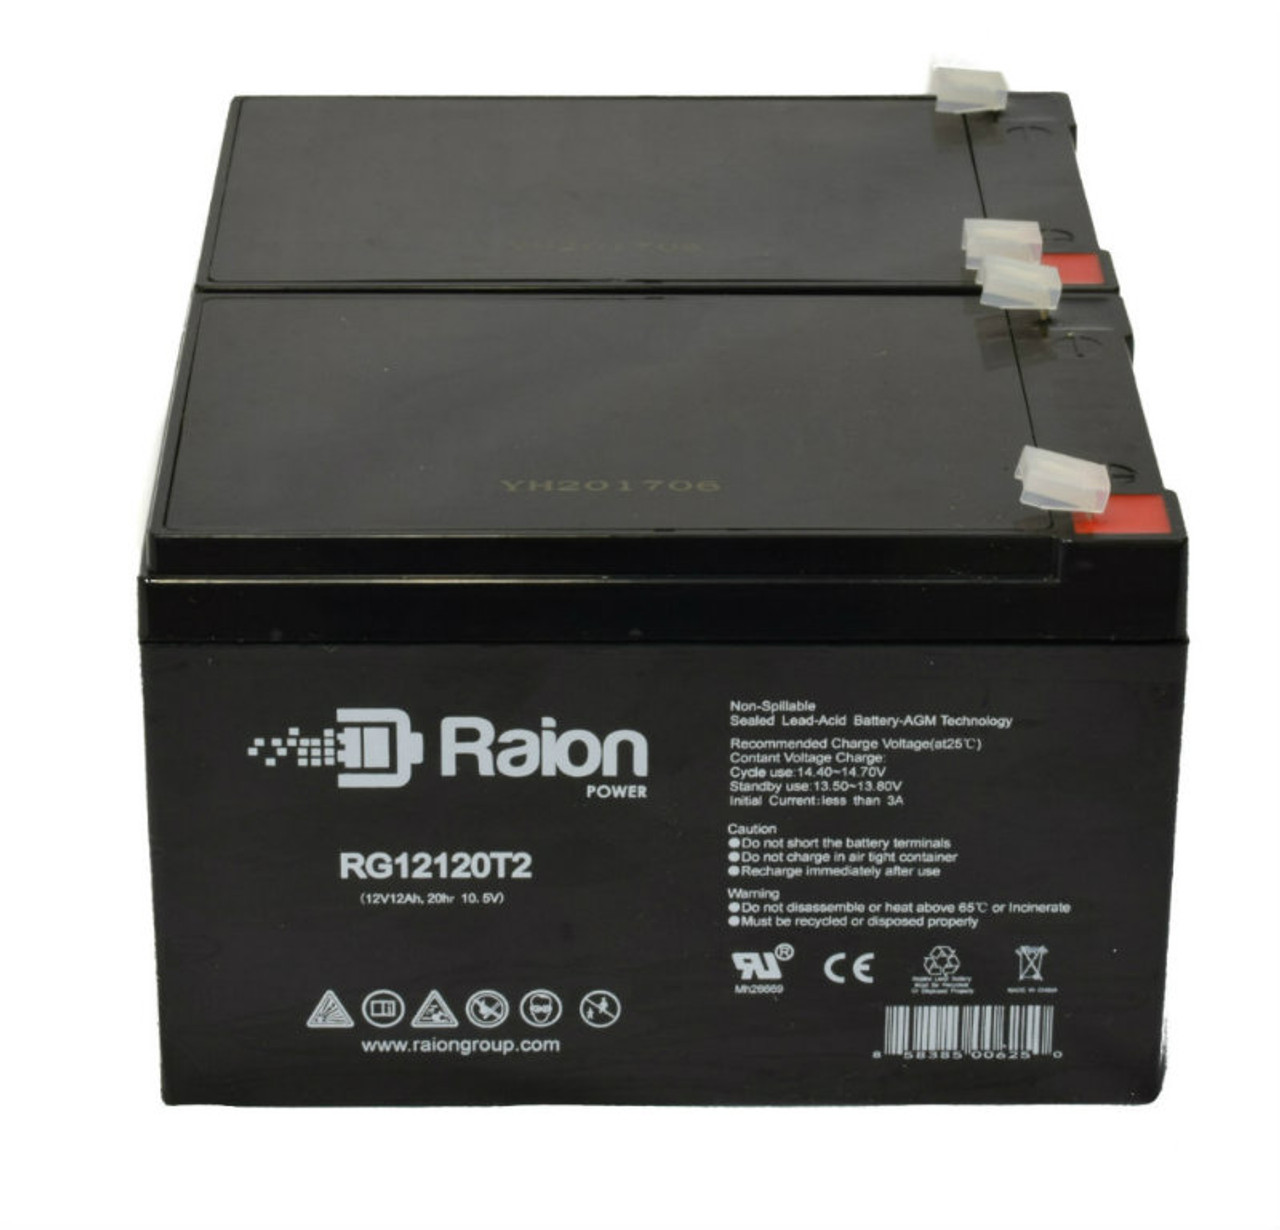 Raion Power RG12120T2 Replacement Battery Pack for Ademco 25360 Fire Alarm Control Panel (2 Pack)